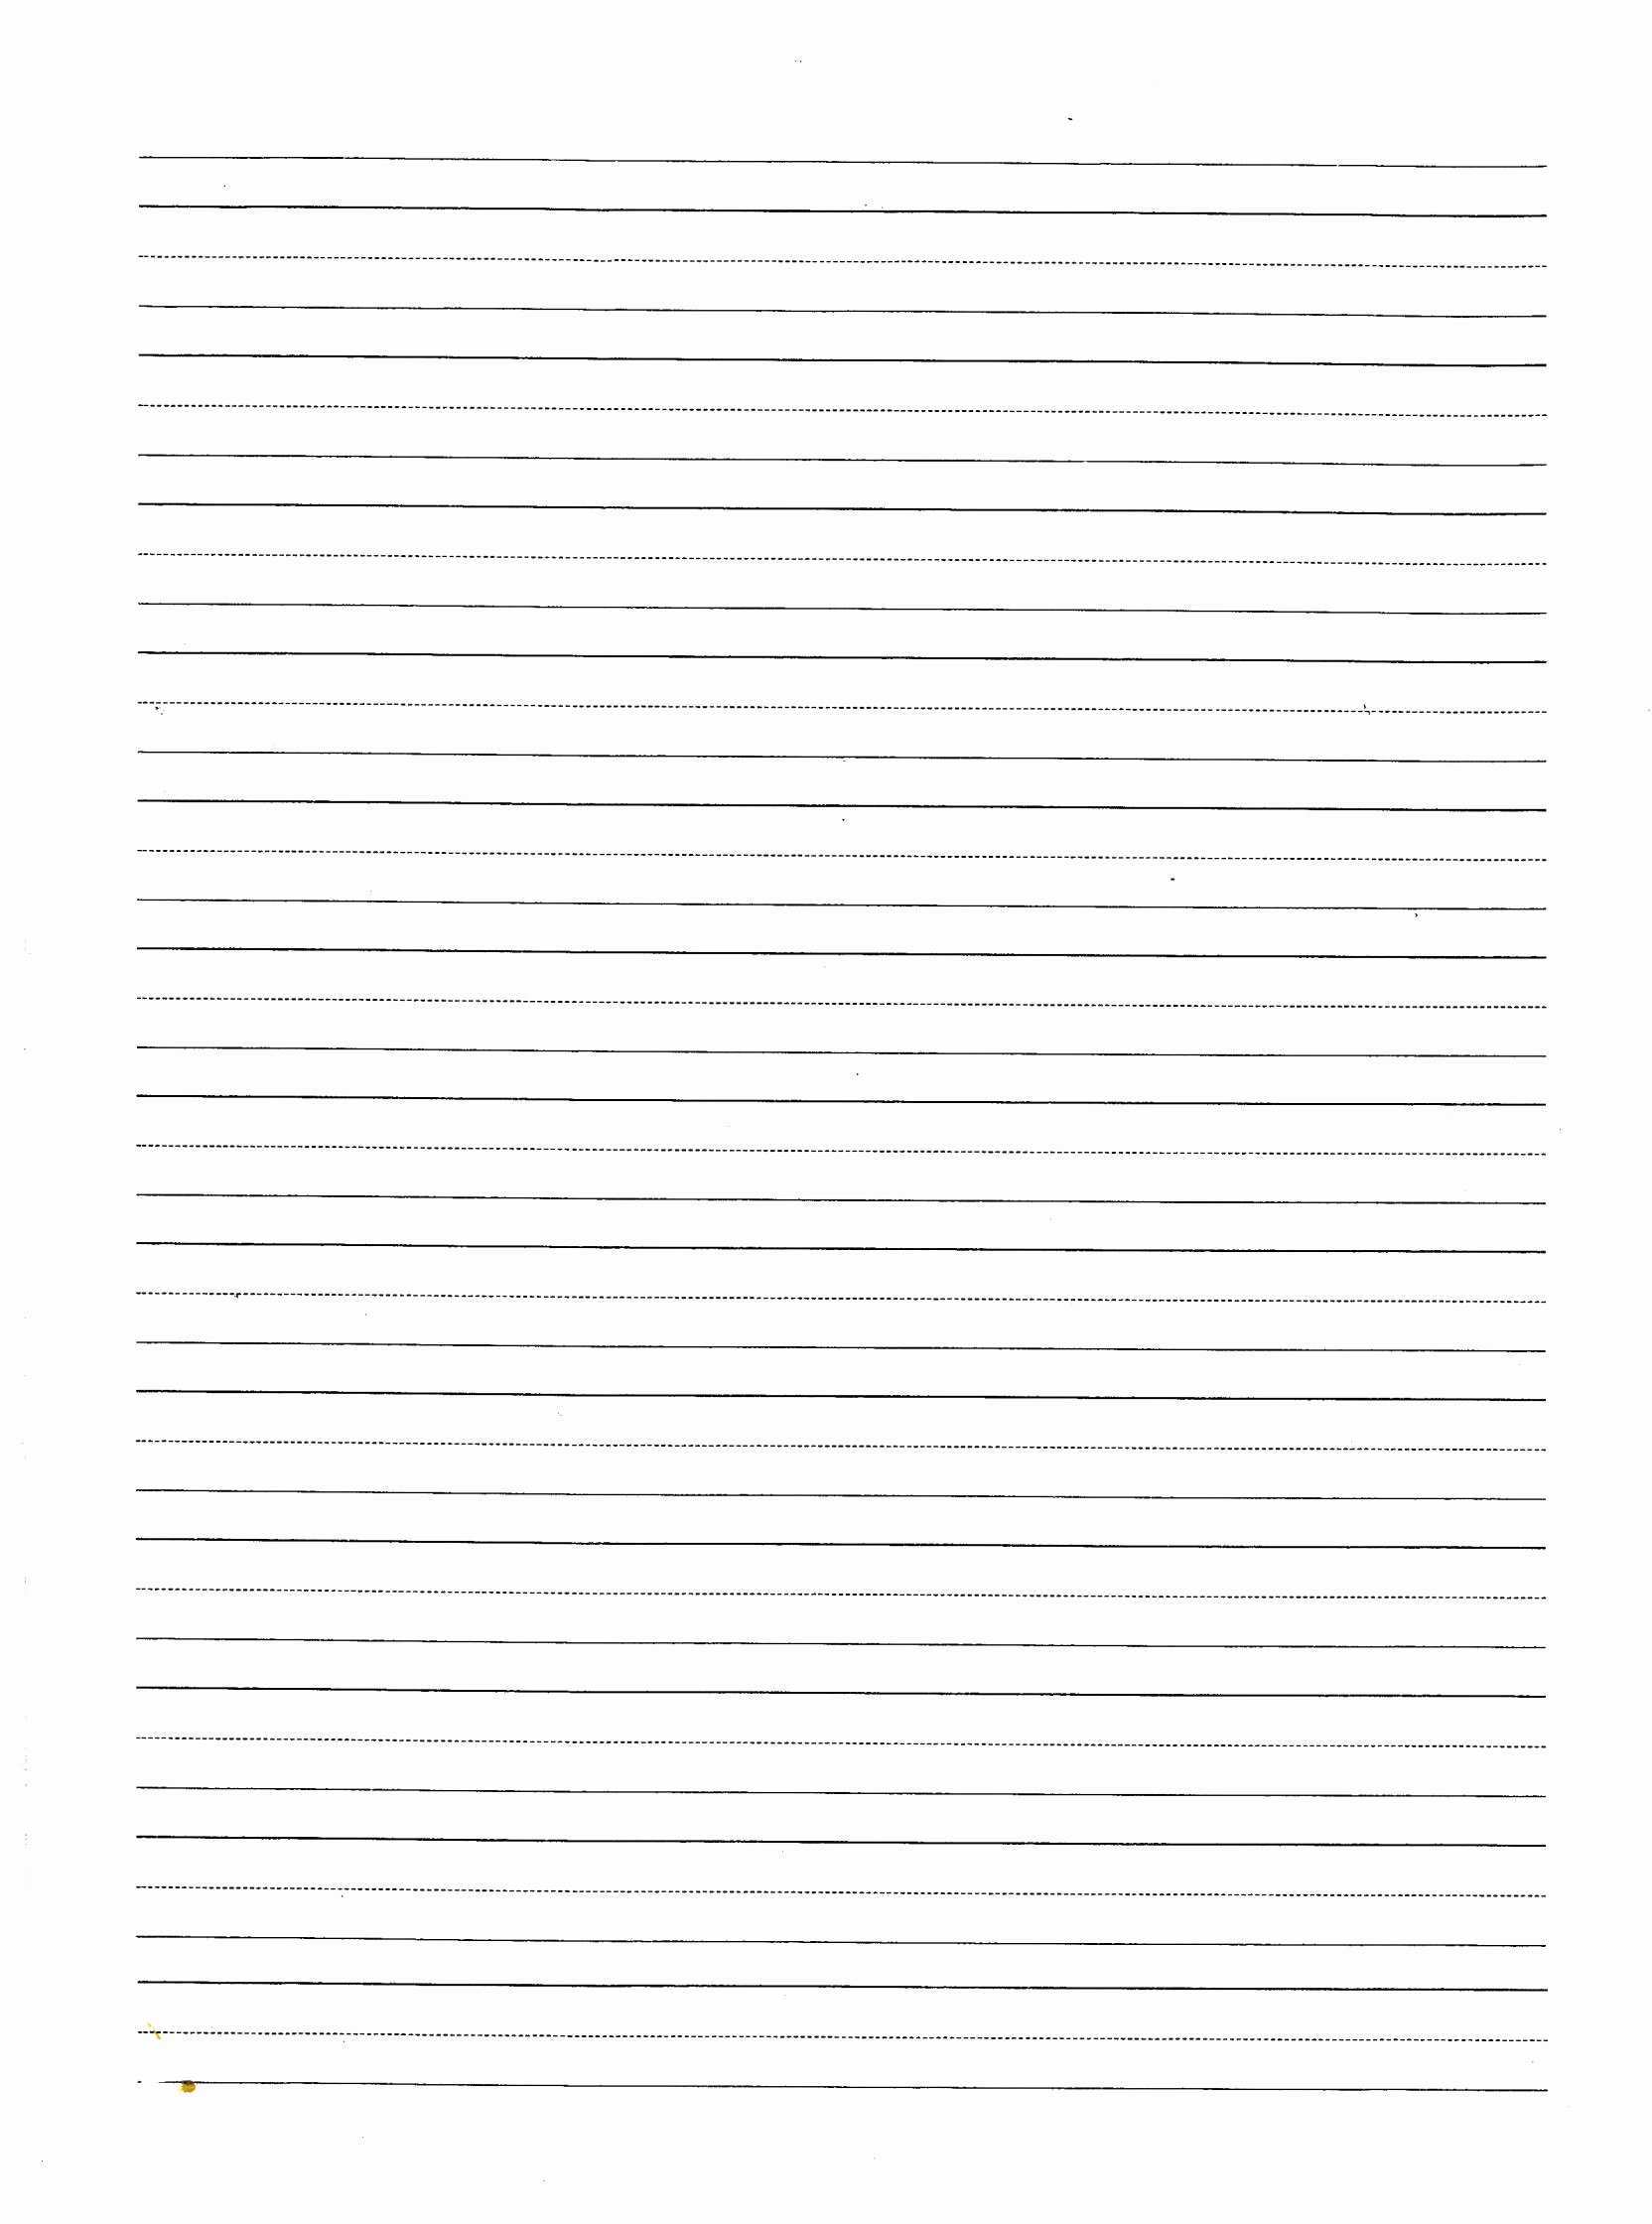 Lined Writing Paper Template Fresh Beginning Writer Lined Paper